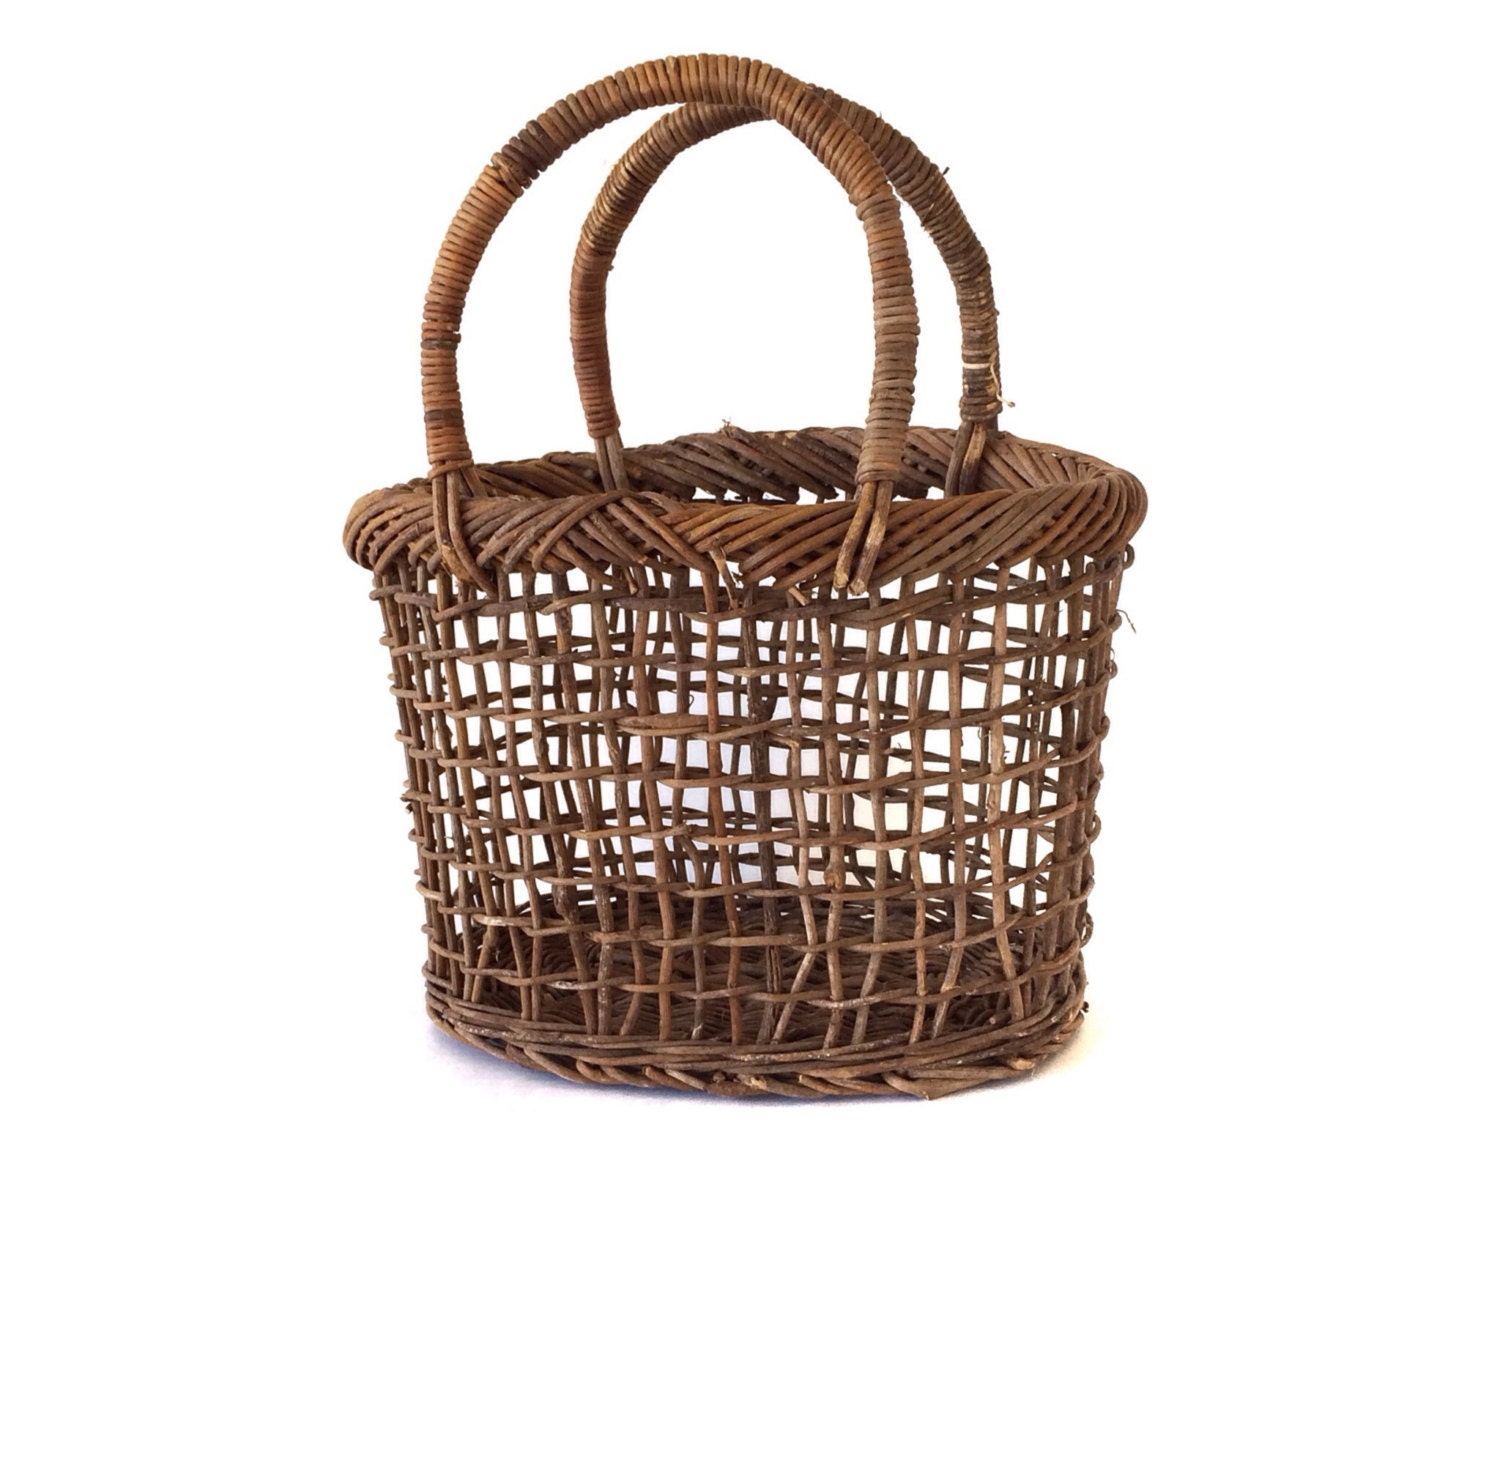 How To Weave A Basket Out Of Twigs : Vintage handmade wicker twig woven basket tote handbag